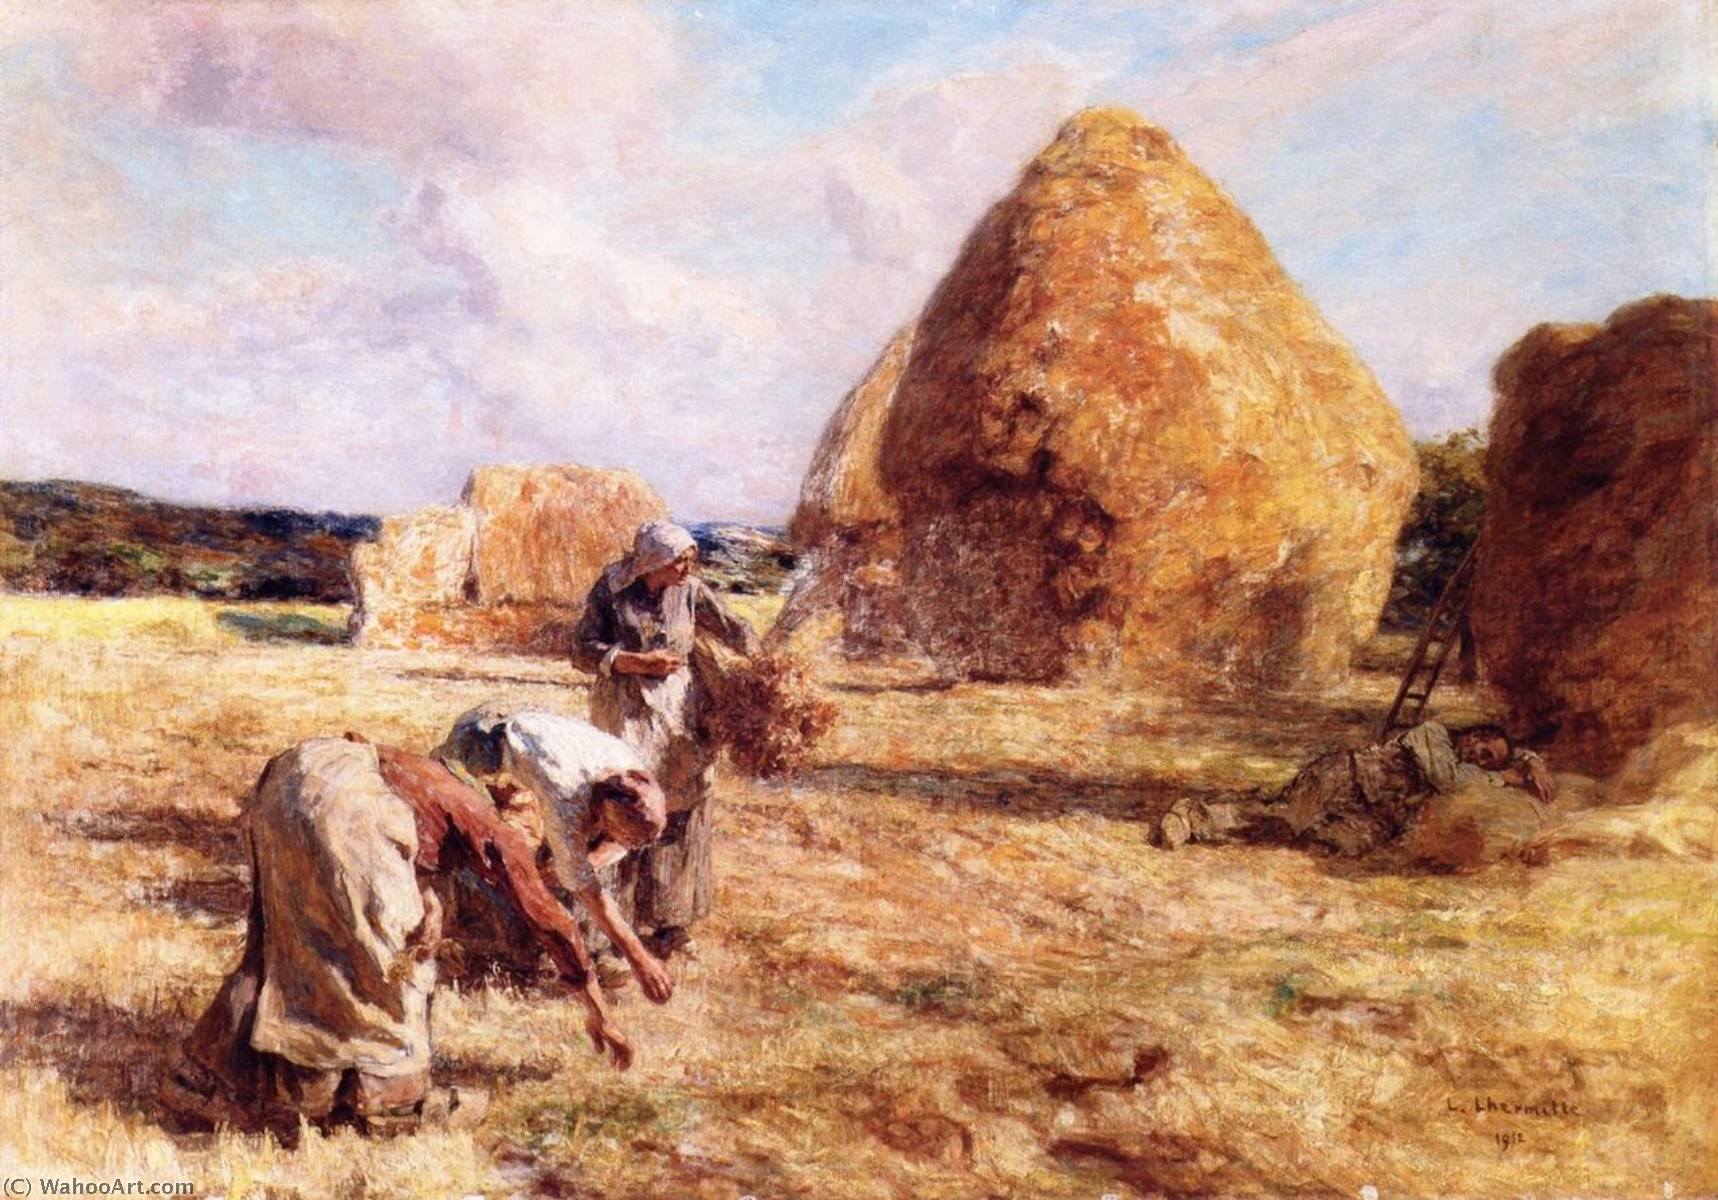 Gleaners near the Haystacks, 1912 by Léon Augustin L'hermitte (1844-1925, France) | Museum Art Reproductions Léon Augustin L'hermitte | WahooArt.com